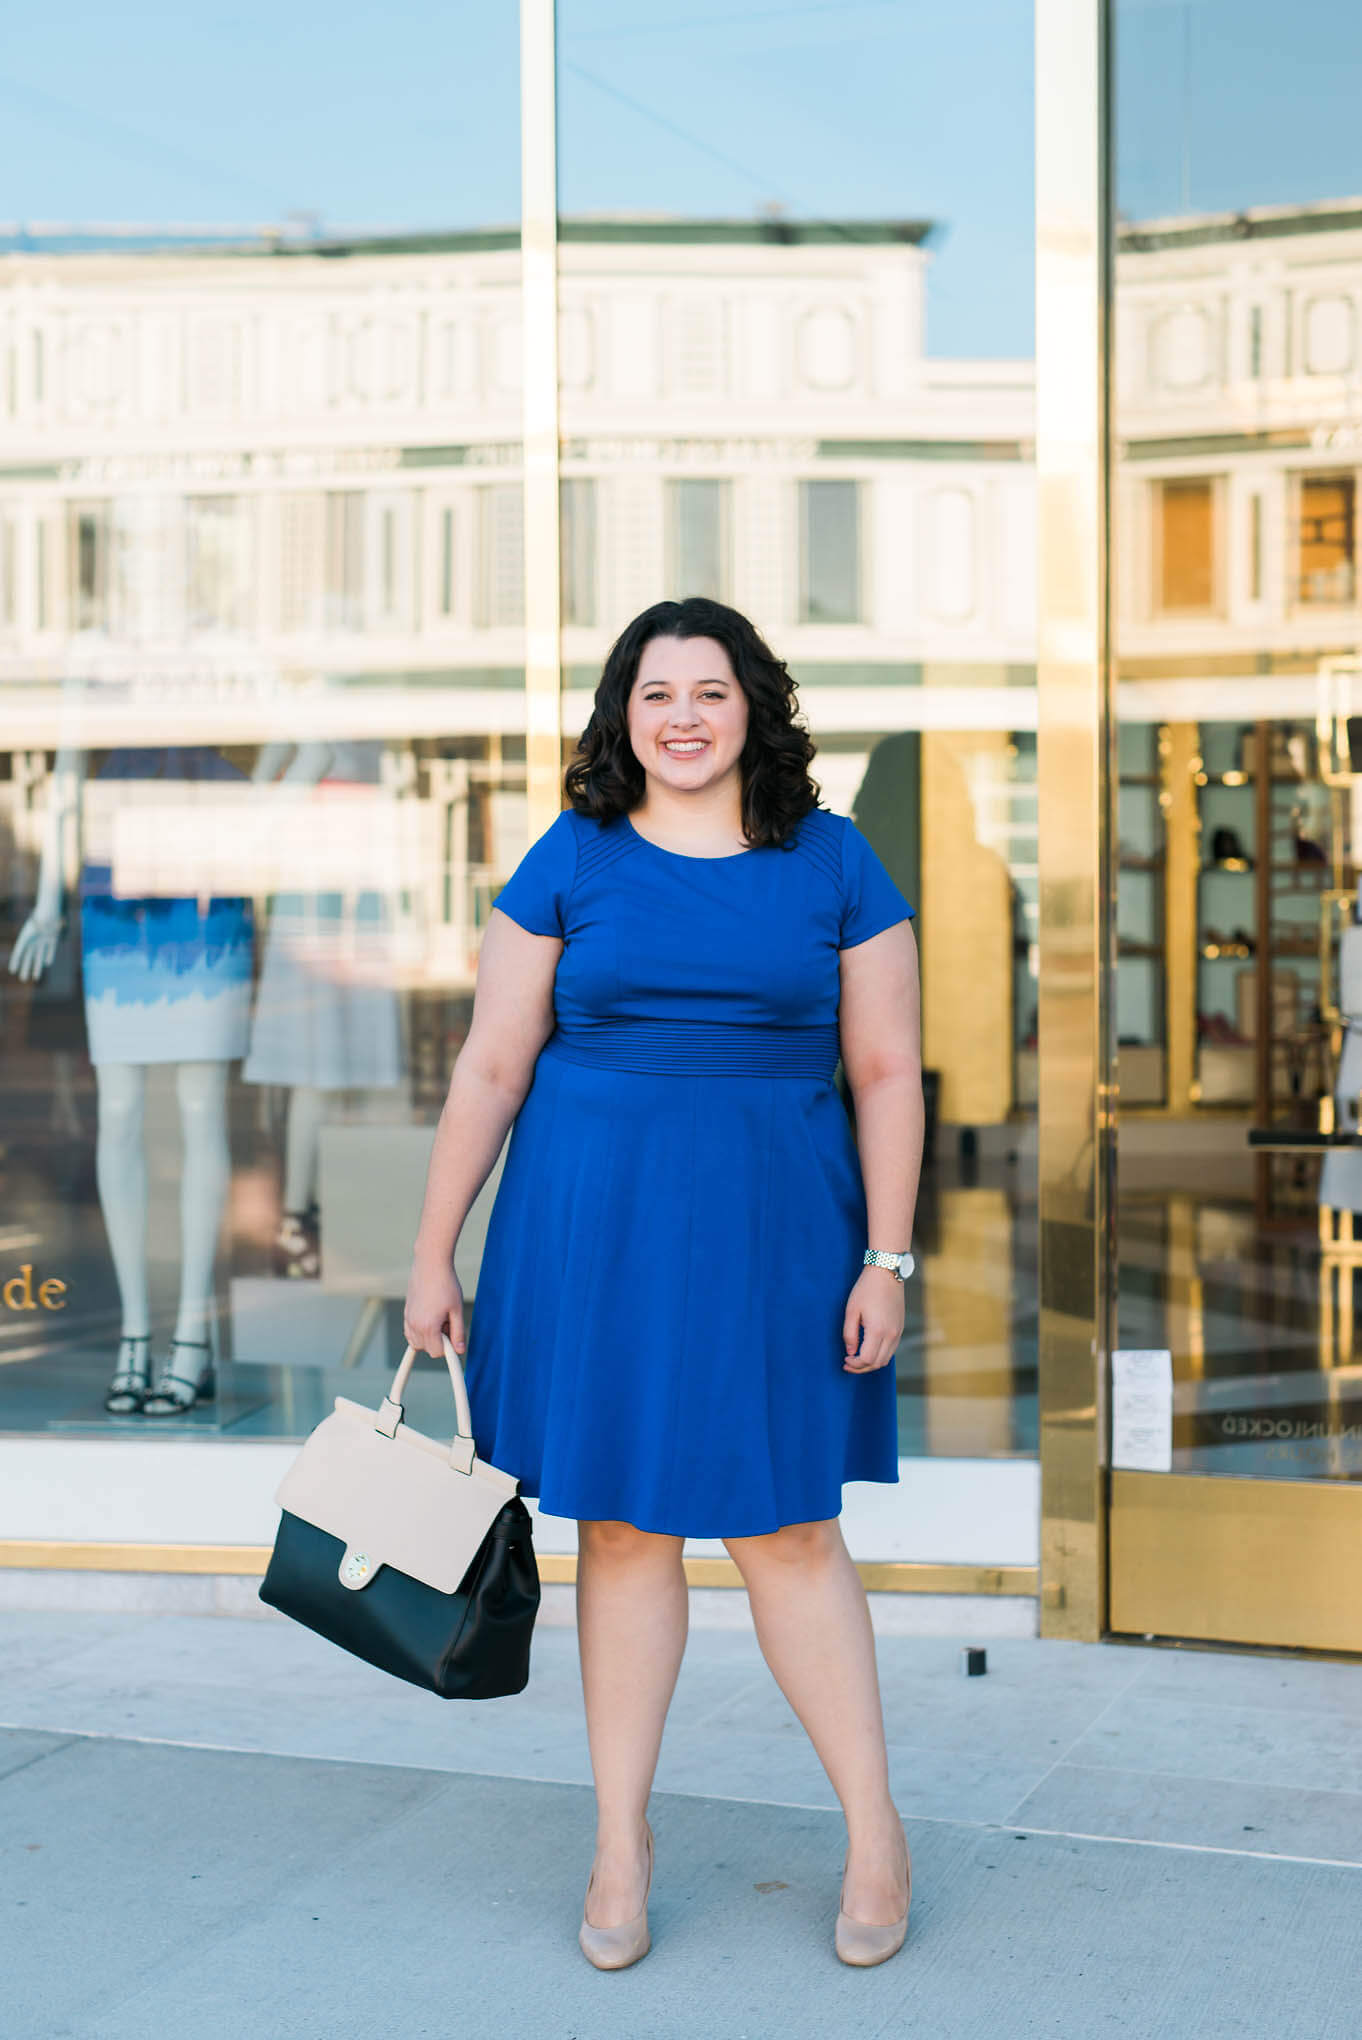 What to wear to work - Something Gold, Something Blue fashion blog - Business casual attire, what to wear to the office, JEMMA work bag, JEMMA bag, best work bag, best bag for travel - Jemma Bag by popular Houston fashion blogger Something Gold, Something Blue